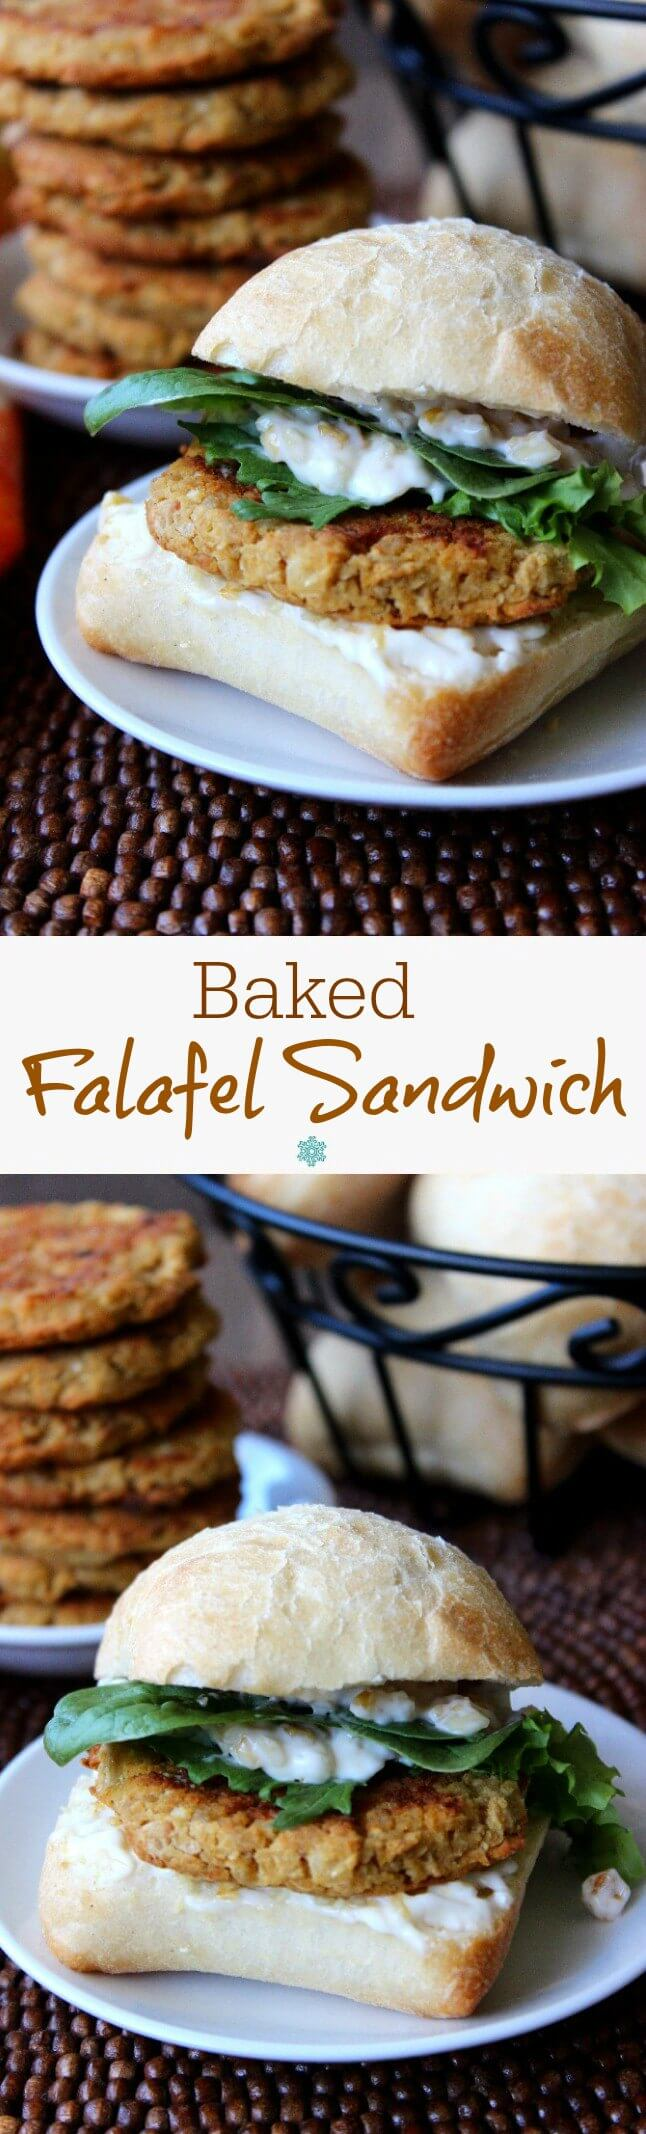 Baked Falafel makes a fantastic sandwich and is healthier than the deep fried version. The flavors are all there and the falafels are great as an entree too.